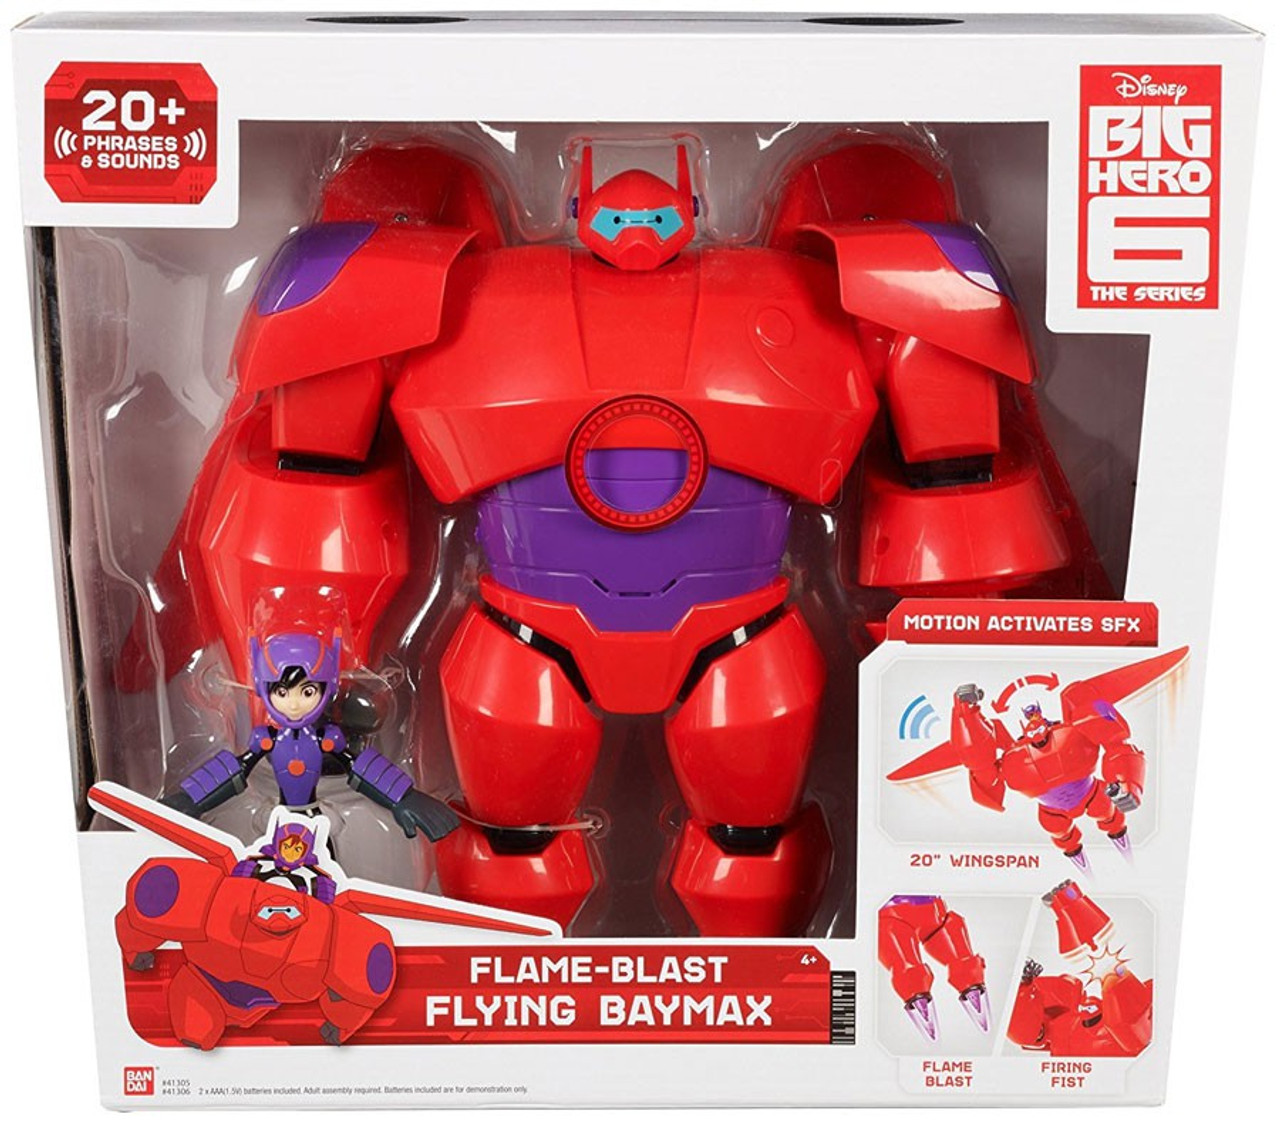 Disney Big Hero 6 The Series Flame Blast Flying Baymax 10 Action Figure Damaged Package Bandai Toywiz